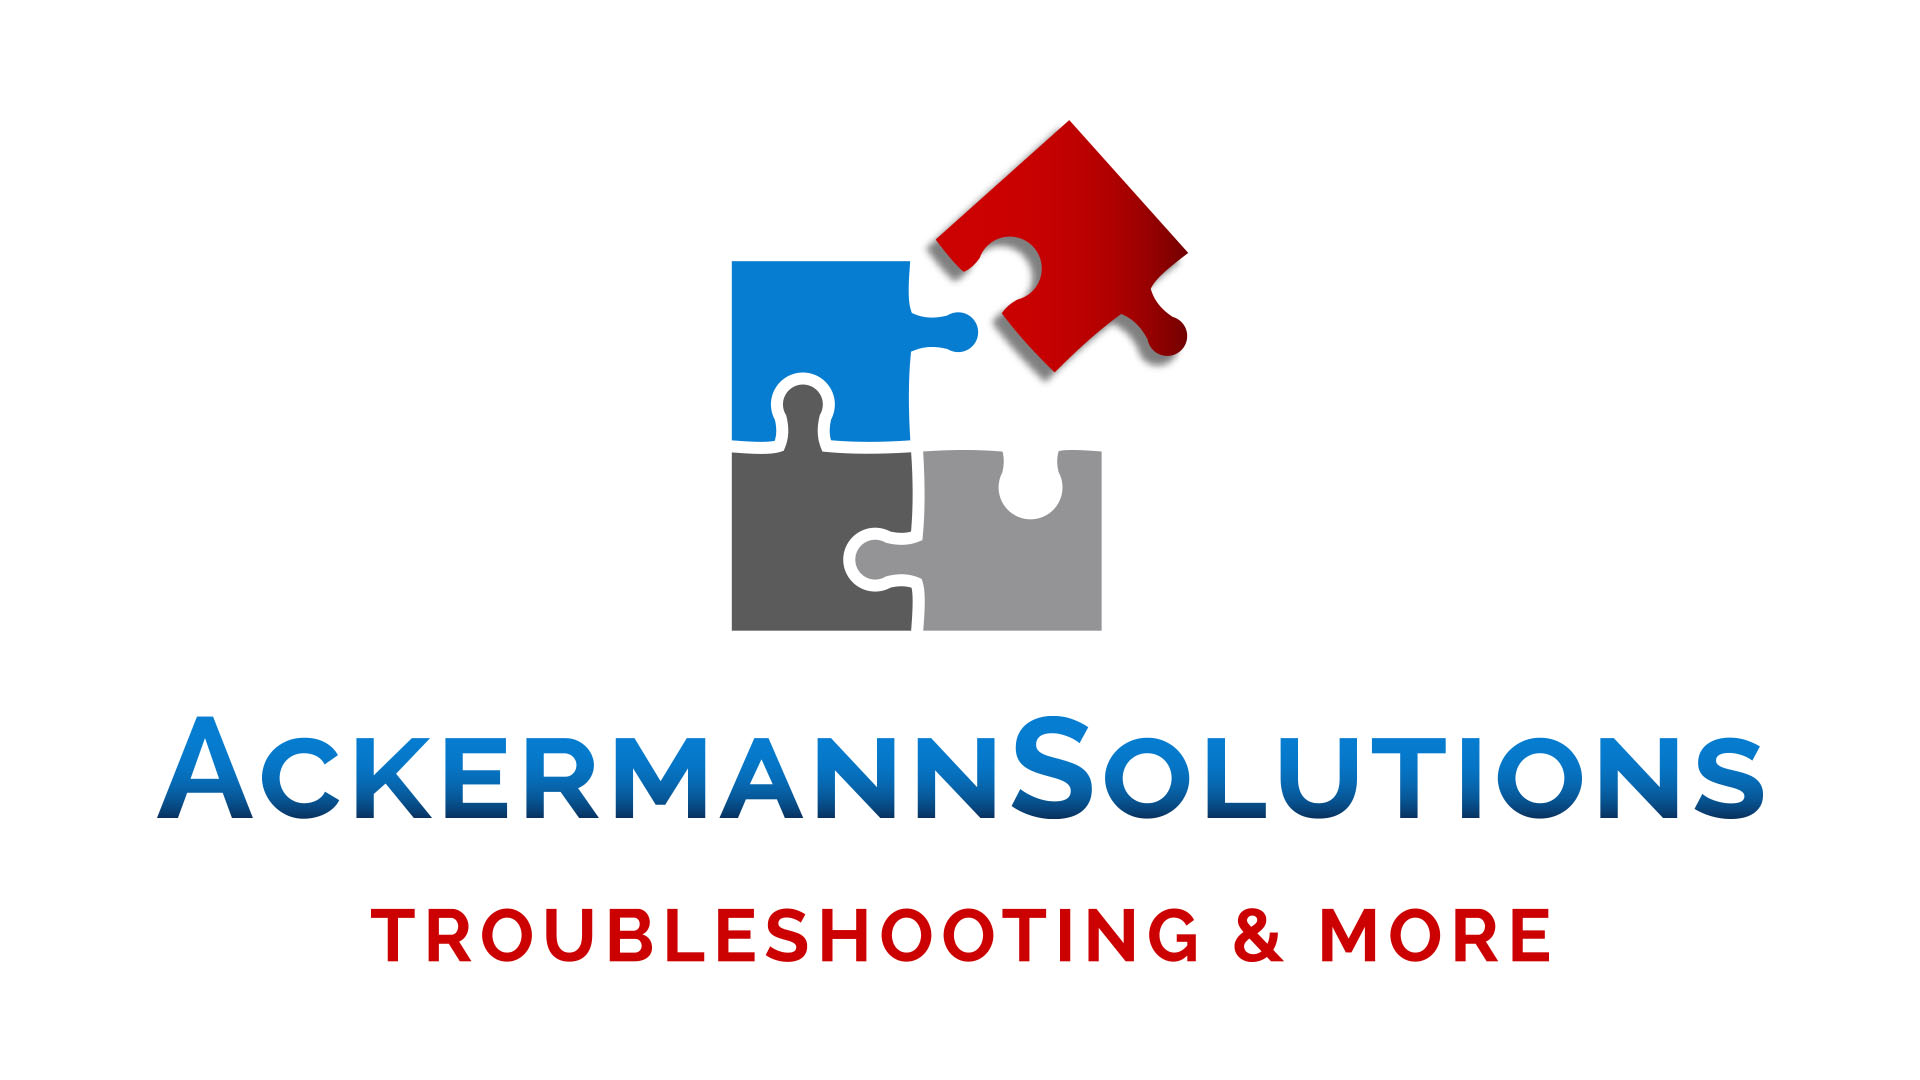 Logo_AckermannSolution